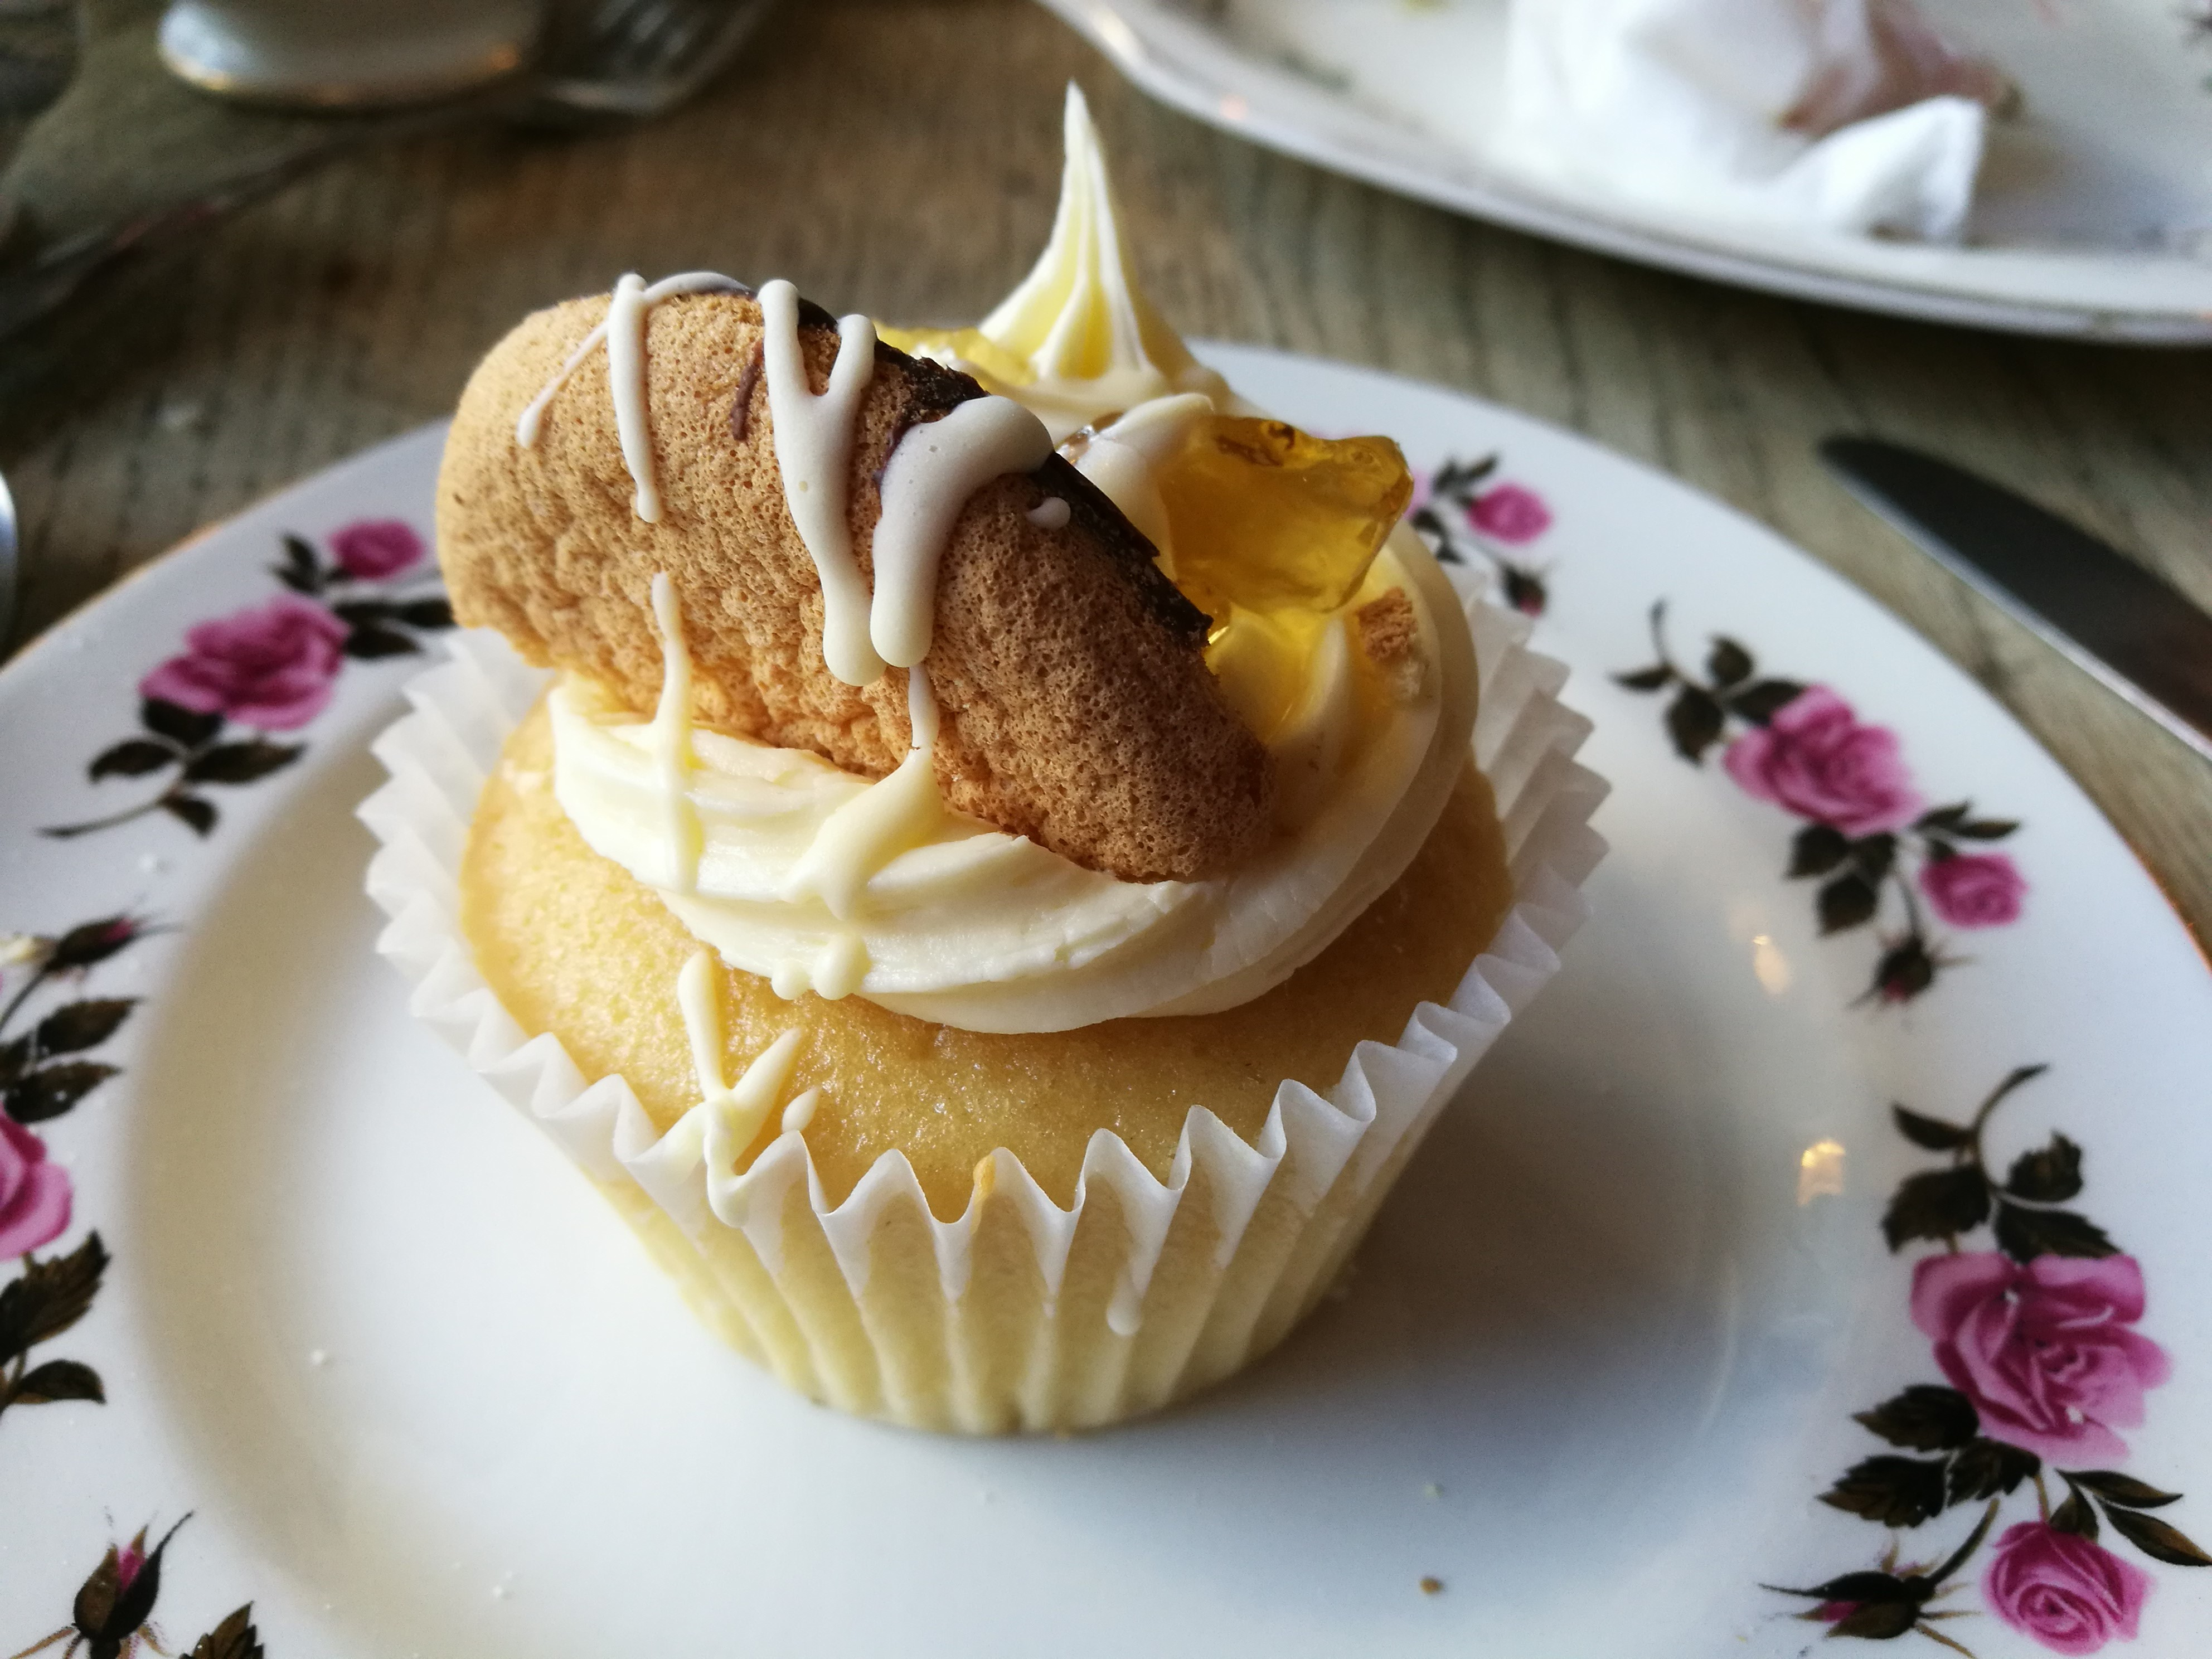 Jaffa cake cupcake Old Young Teahouse